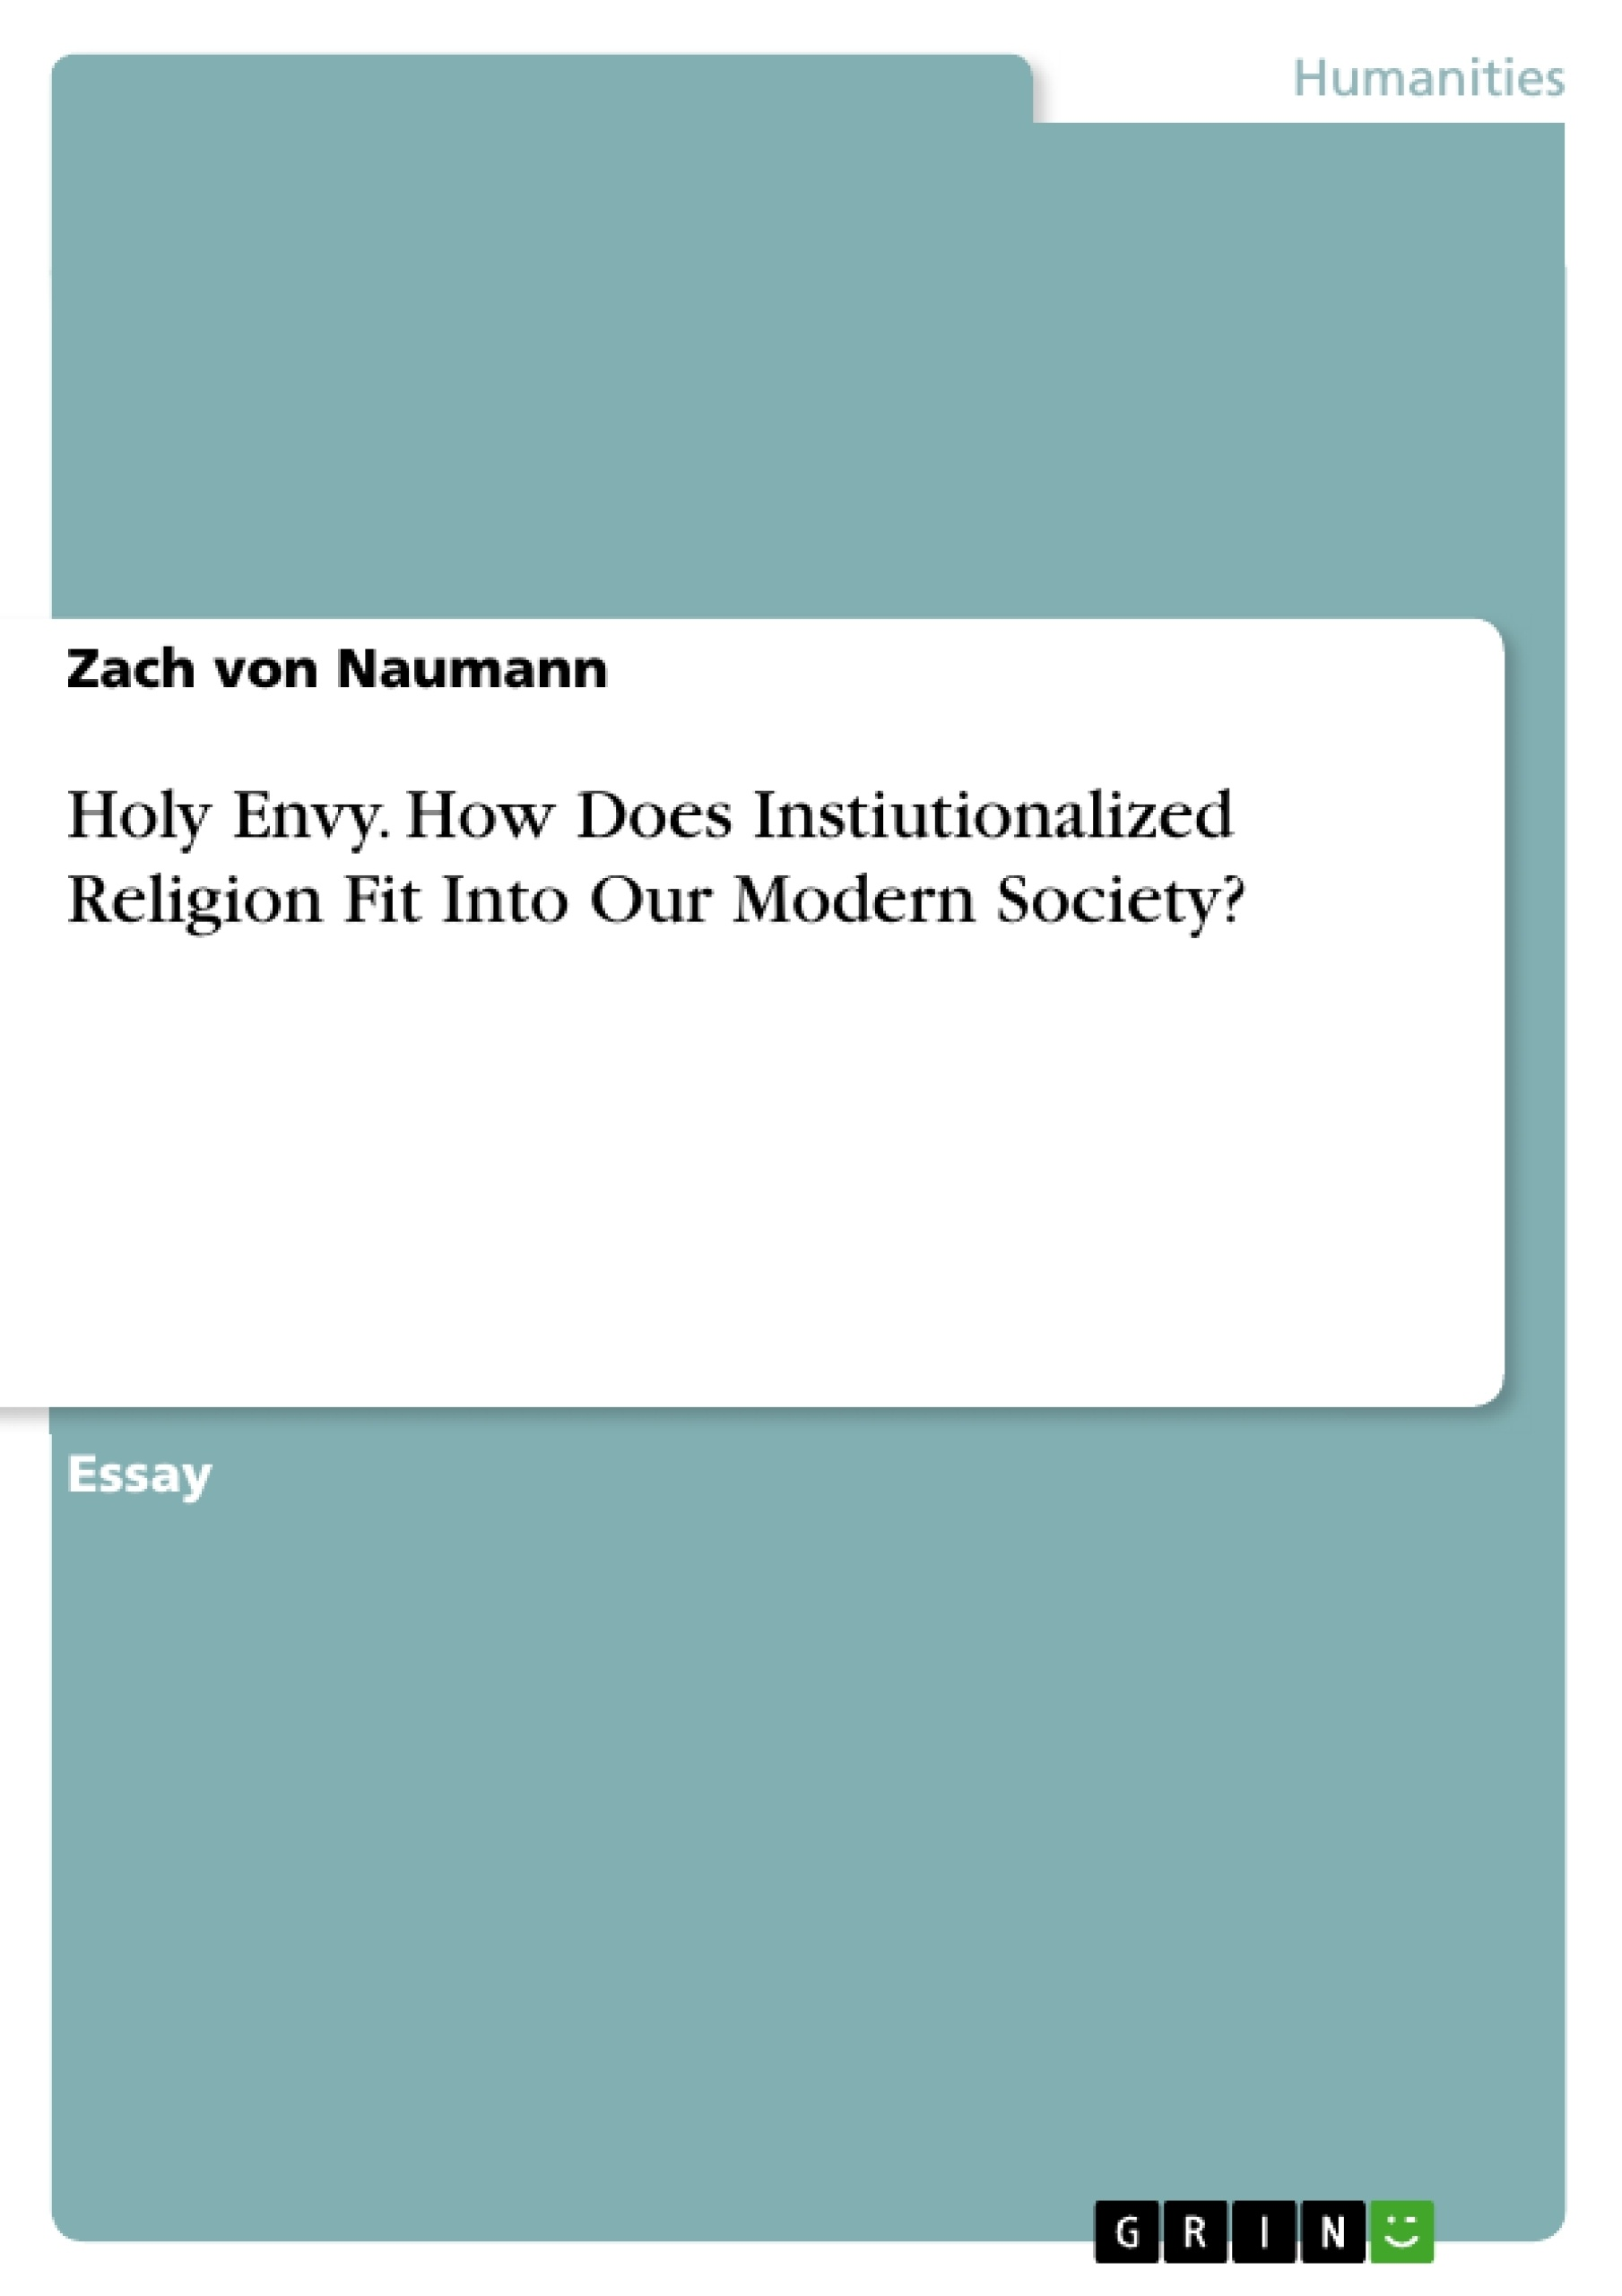 Title: Holy Envy. How Does Instiutionalized Religion Fit Into Our Modern Society?